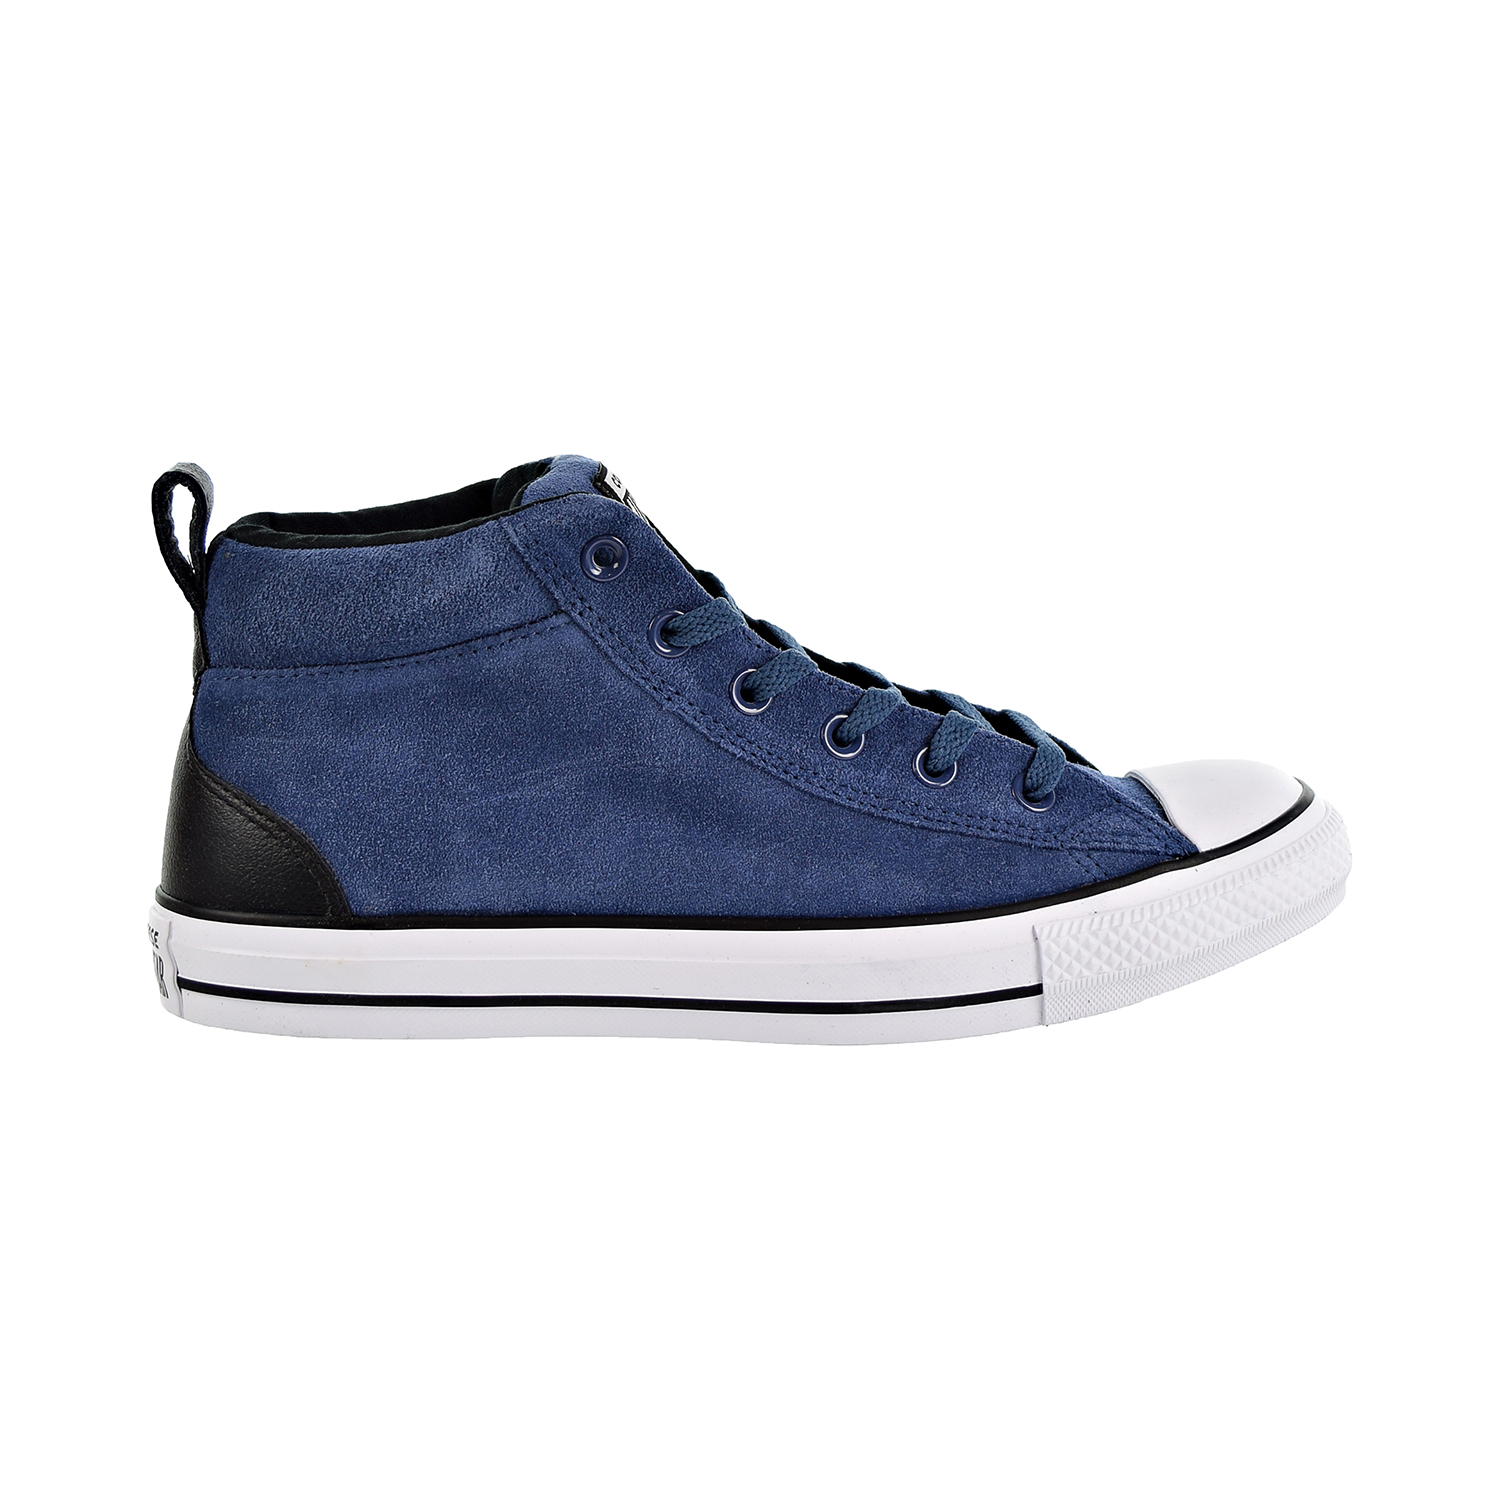 Converse Chuck Taylor All Star Street Mid Unisex Shoes Mason Blue Black White  161468c cd0c2233d